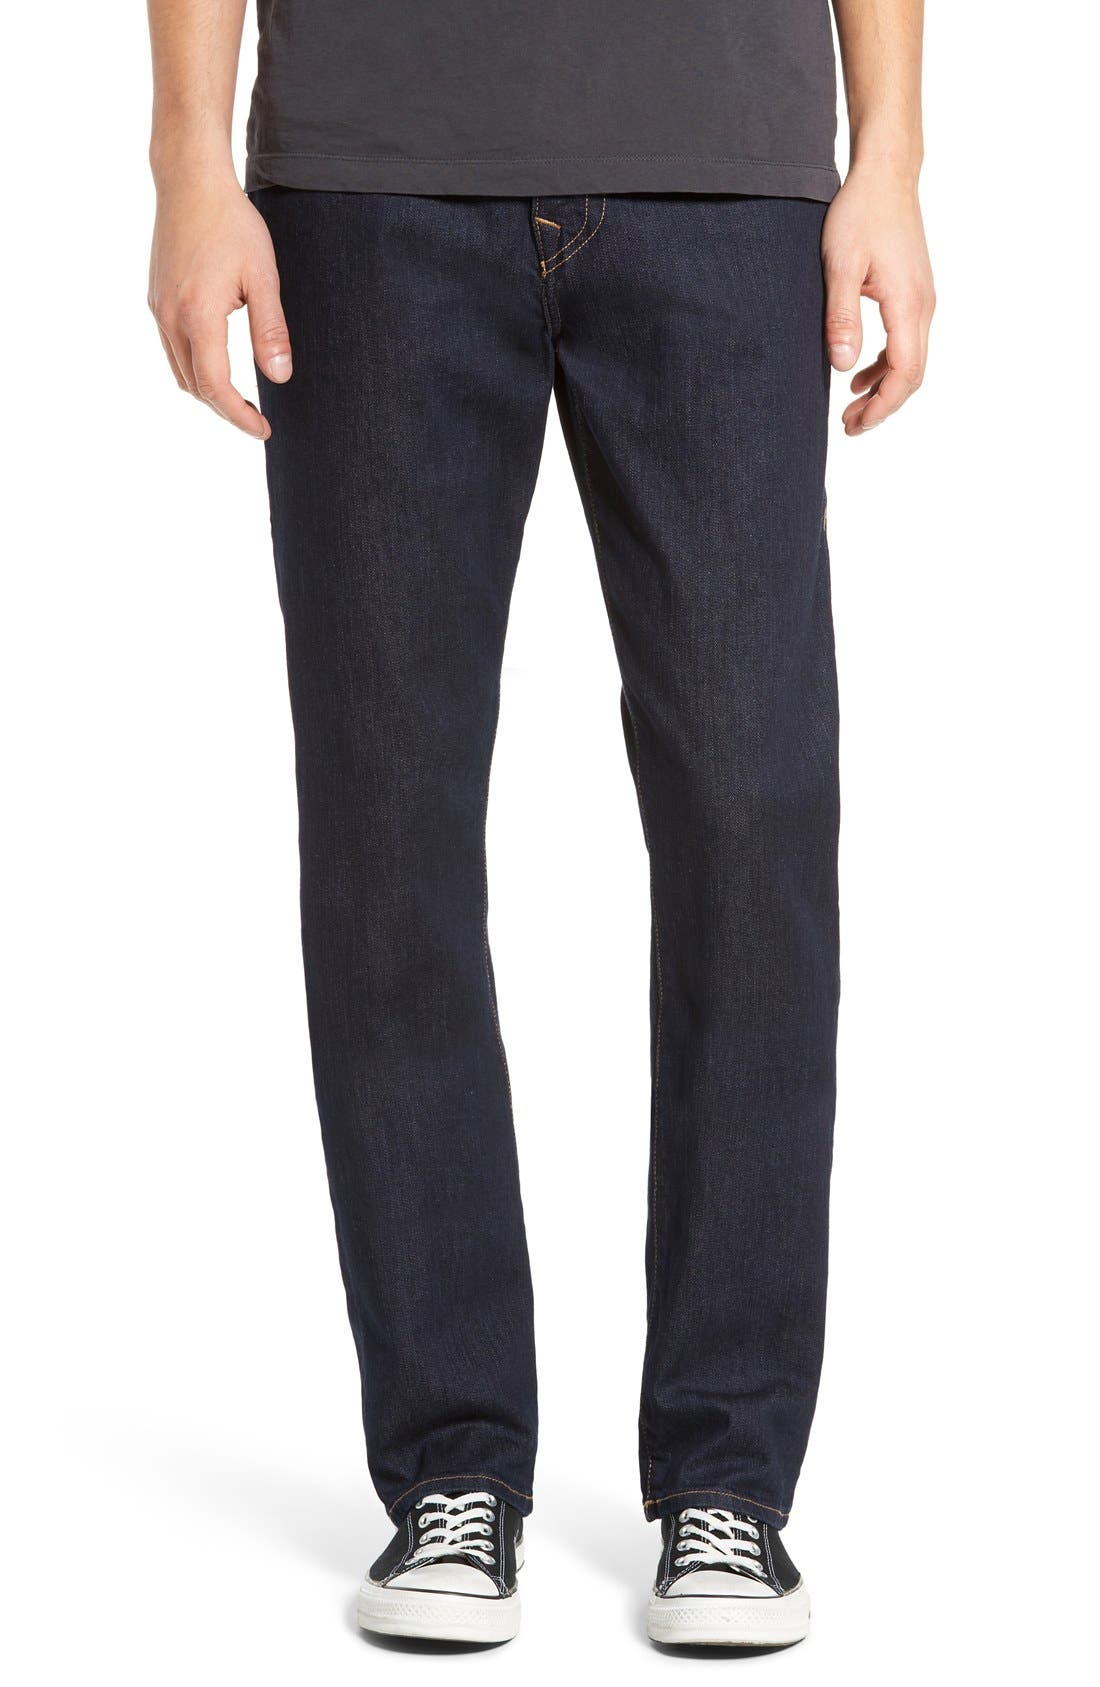 Ricky Relaxed Fit Jeans,                         Main,                         color, 2S Body Rinse